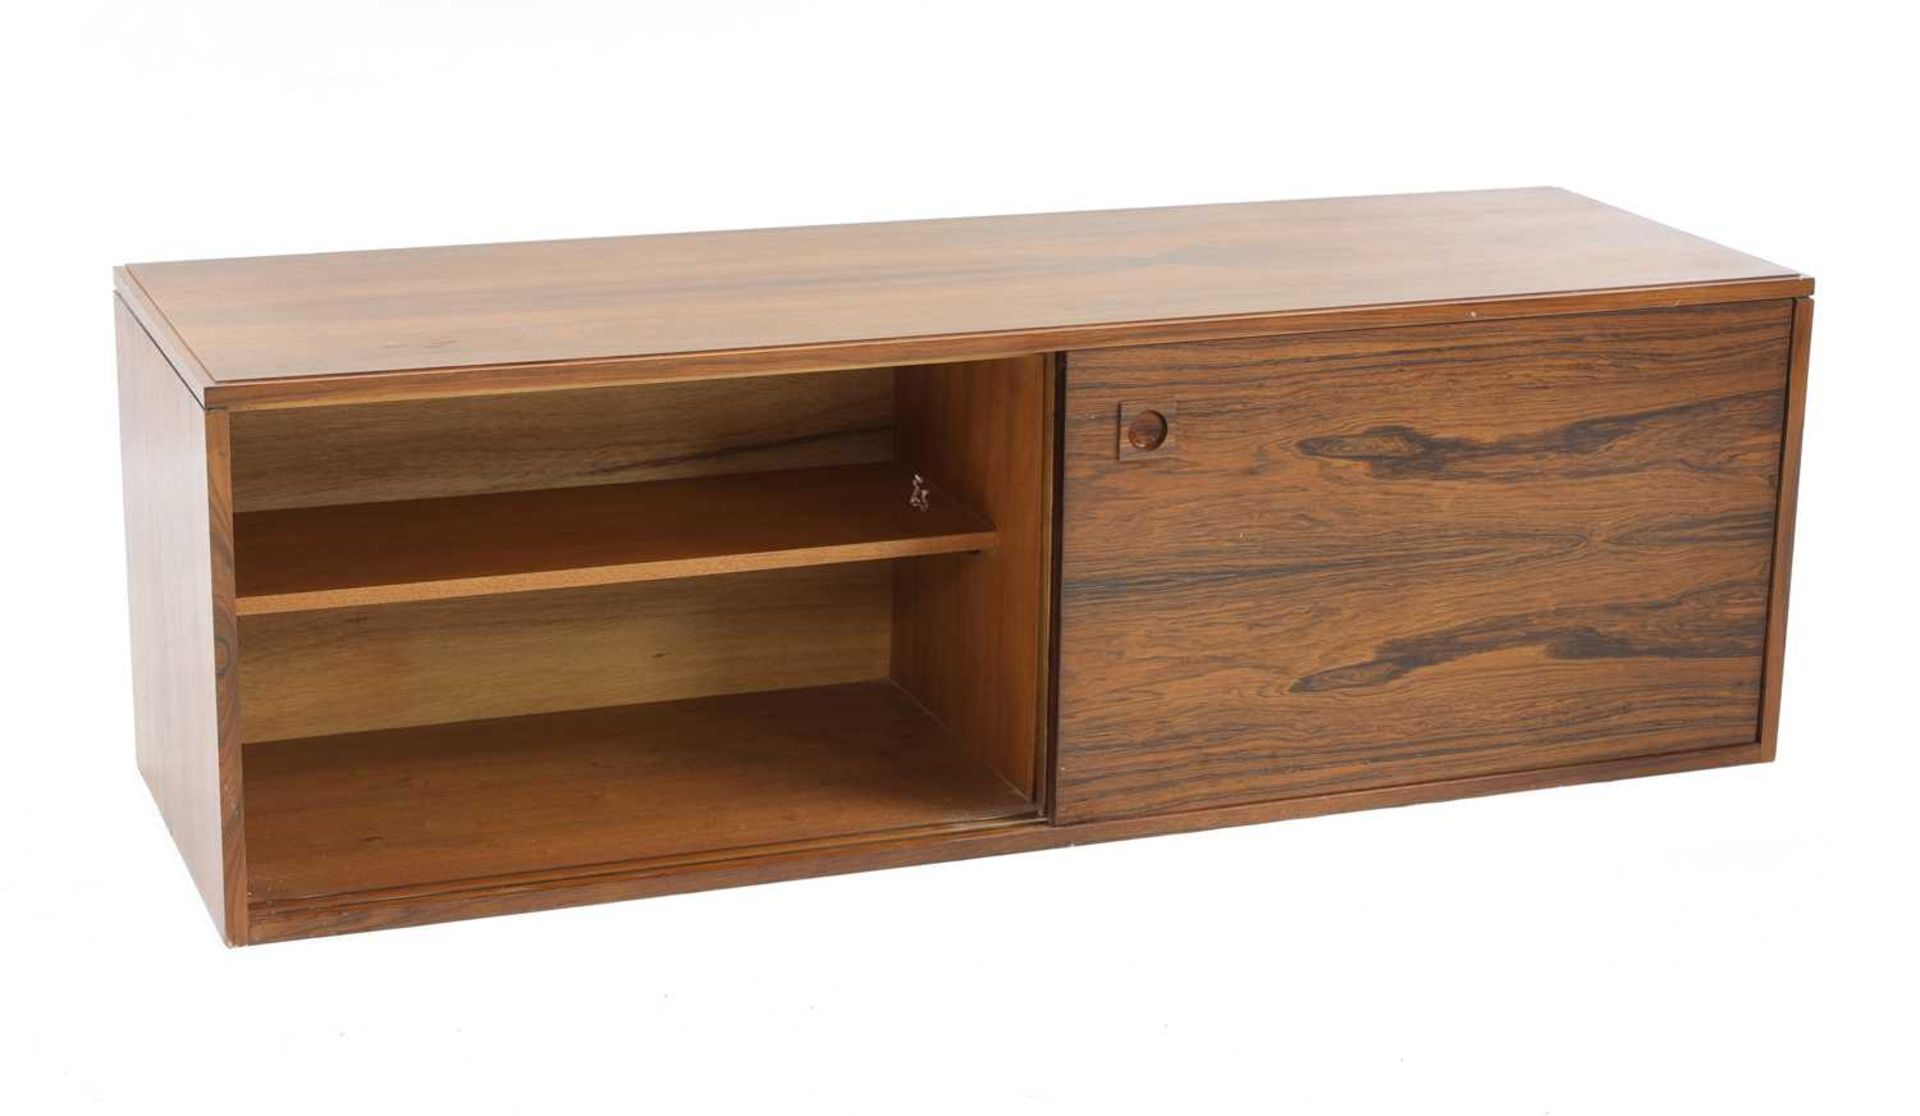 A rosewood wall cabinet, § - Image 2 of 14